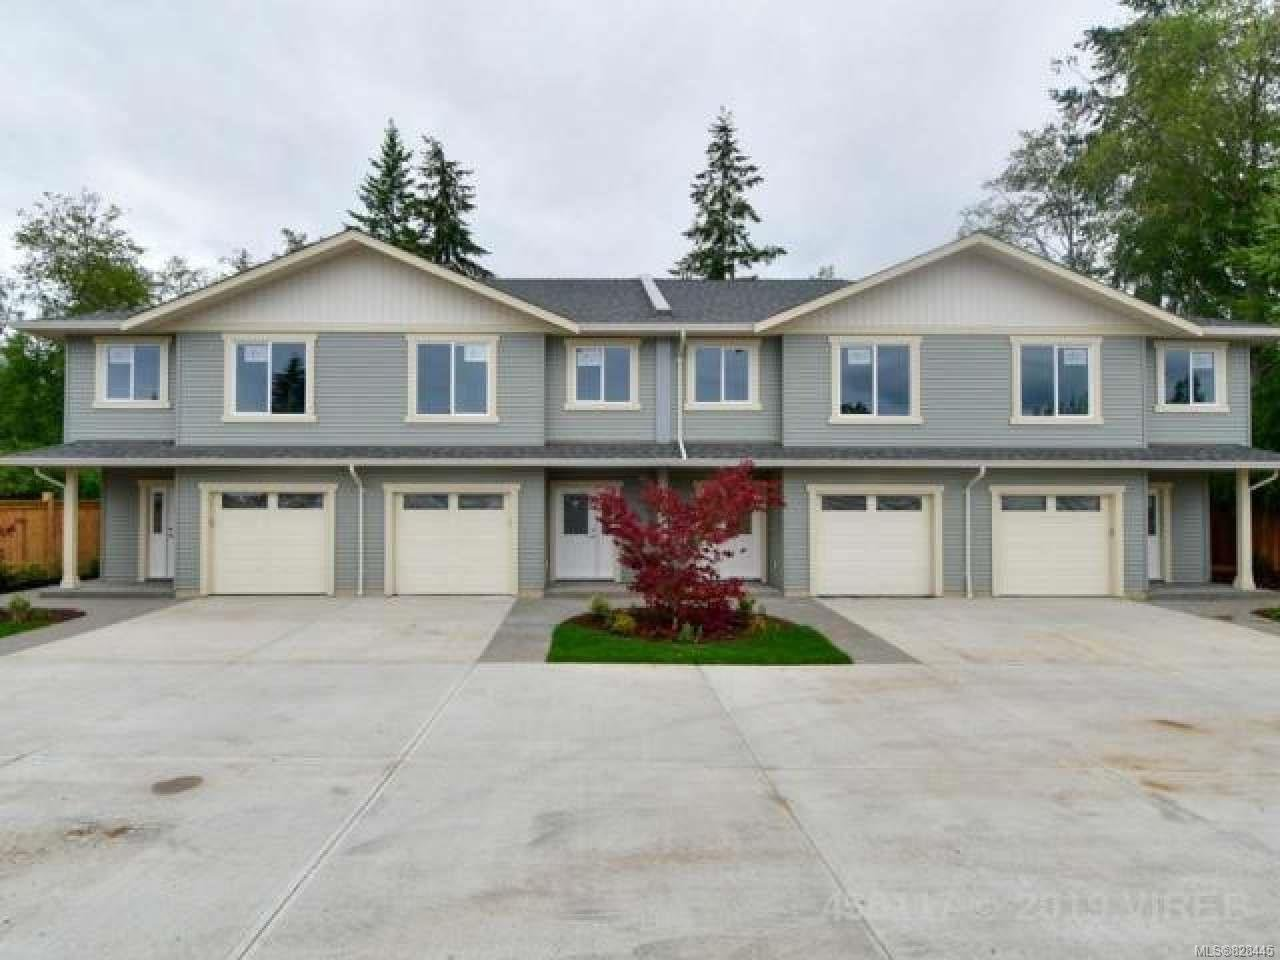 Main Photo: 336D Petersen Rd in CAMPBELL RIVER: CR Campbellton Row/Townhouse for sale (Campbell River)  : MLS®# 828445